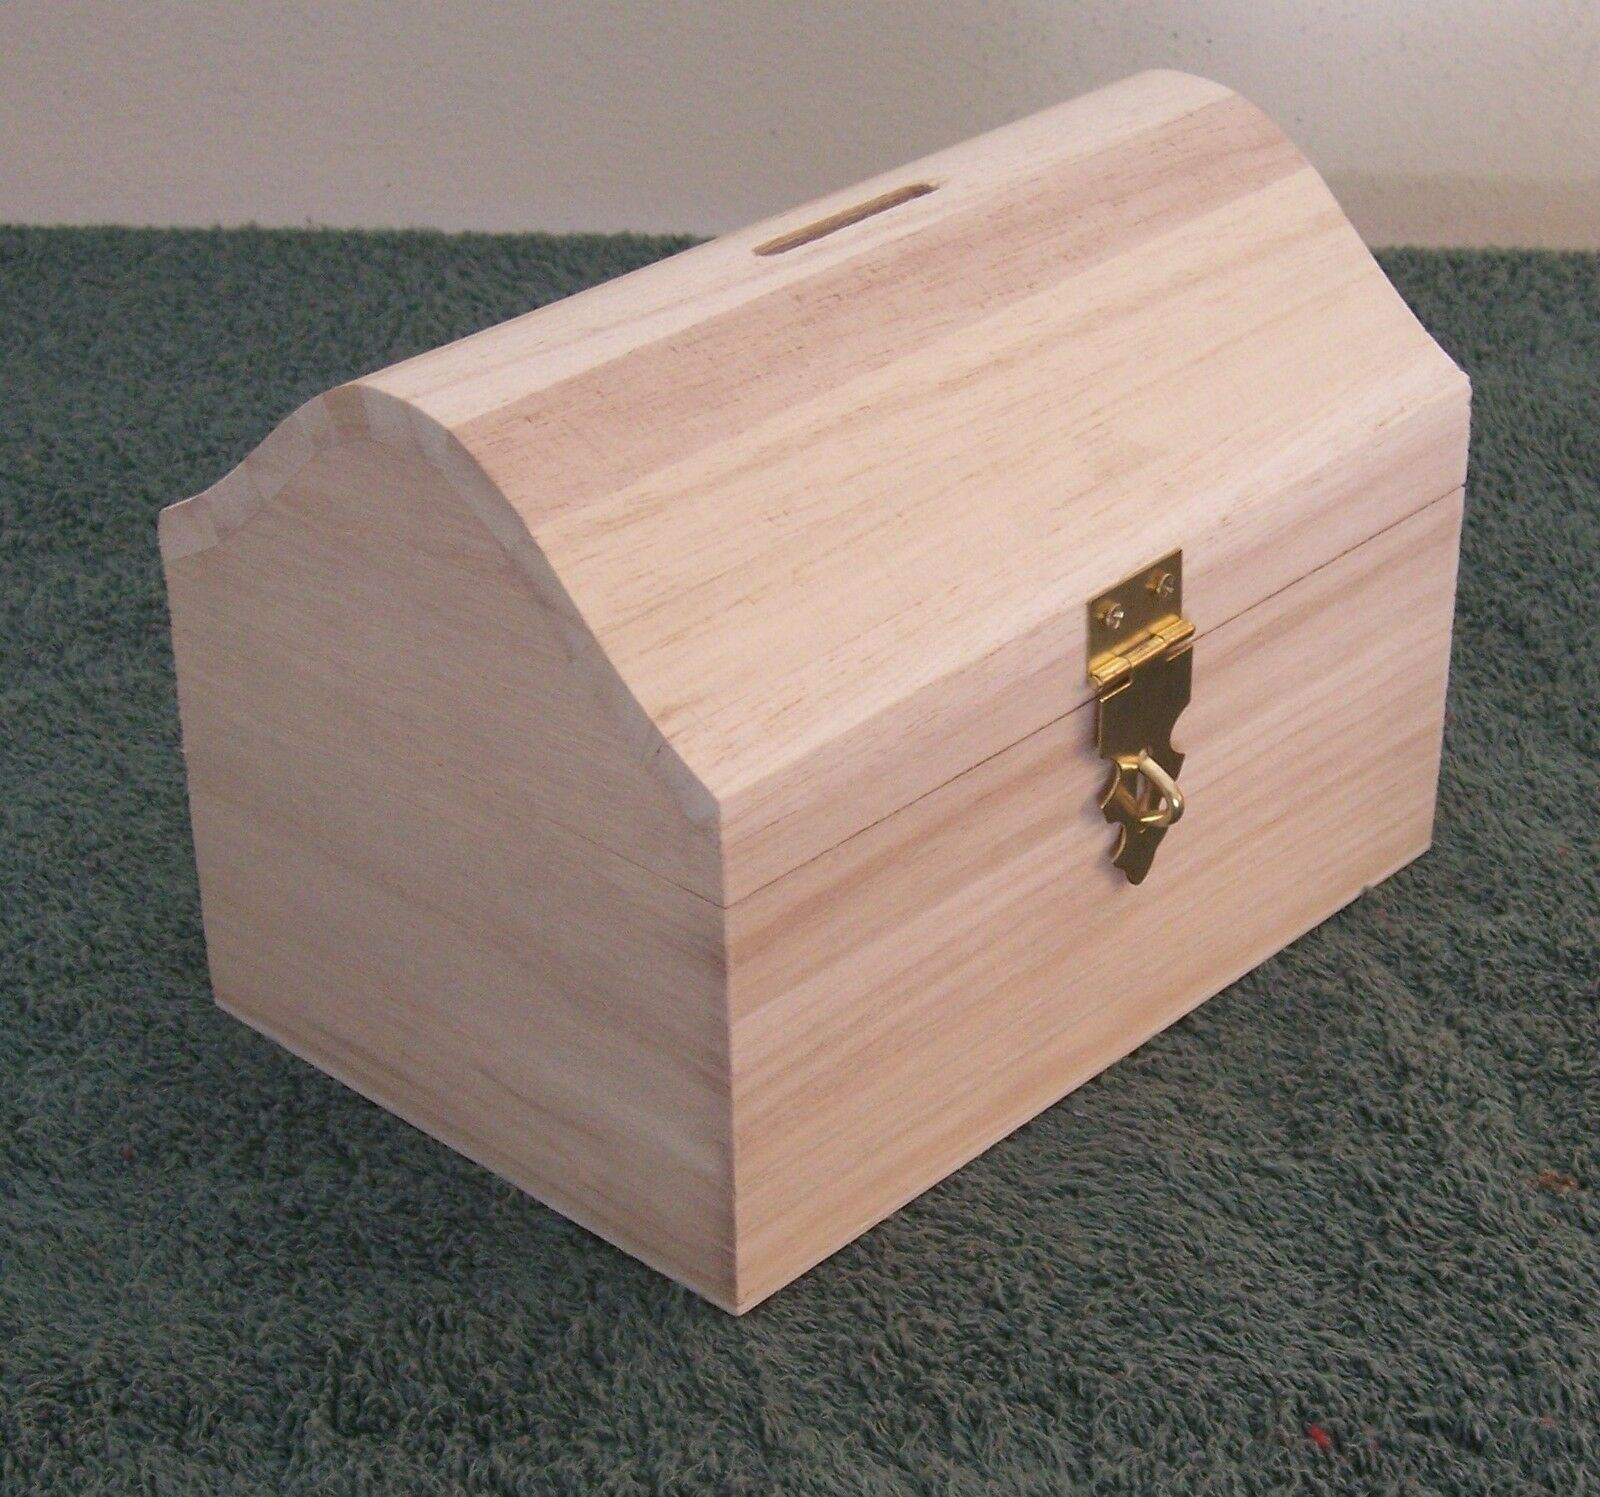 Unfinished medium wood craft treasure chest bank box or